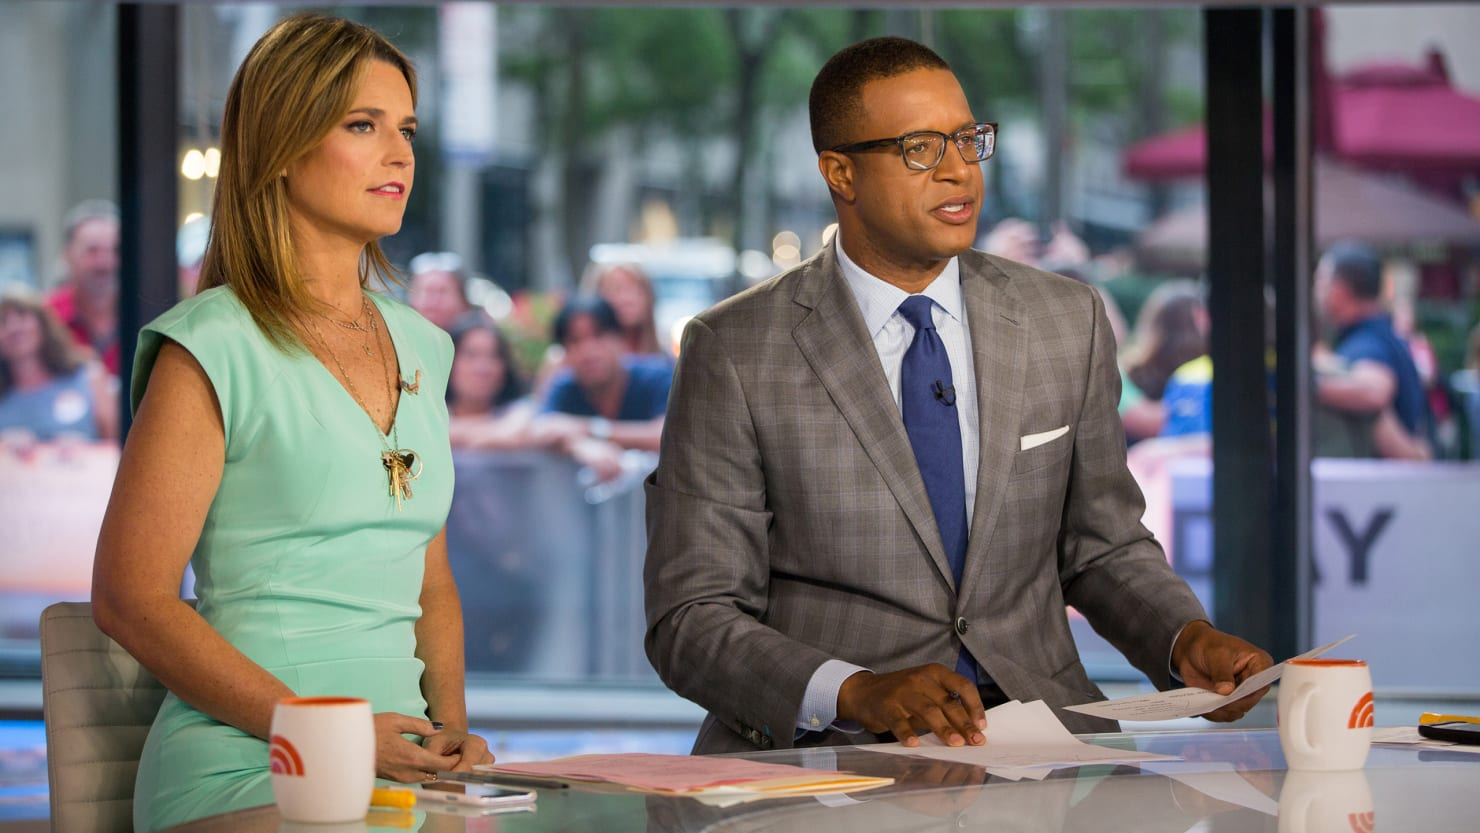 Craig Melvin May Bring a Welcome Bite to NBC's 'Today'